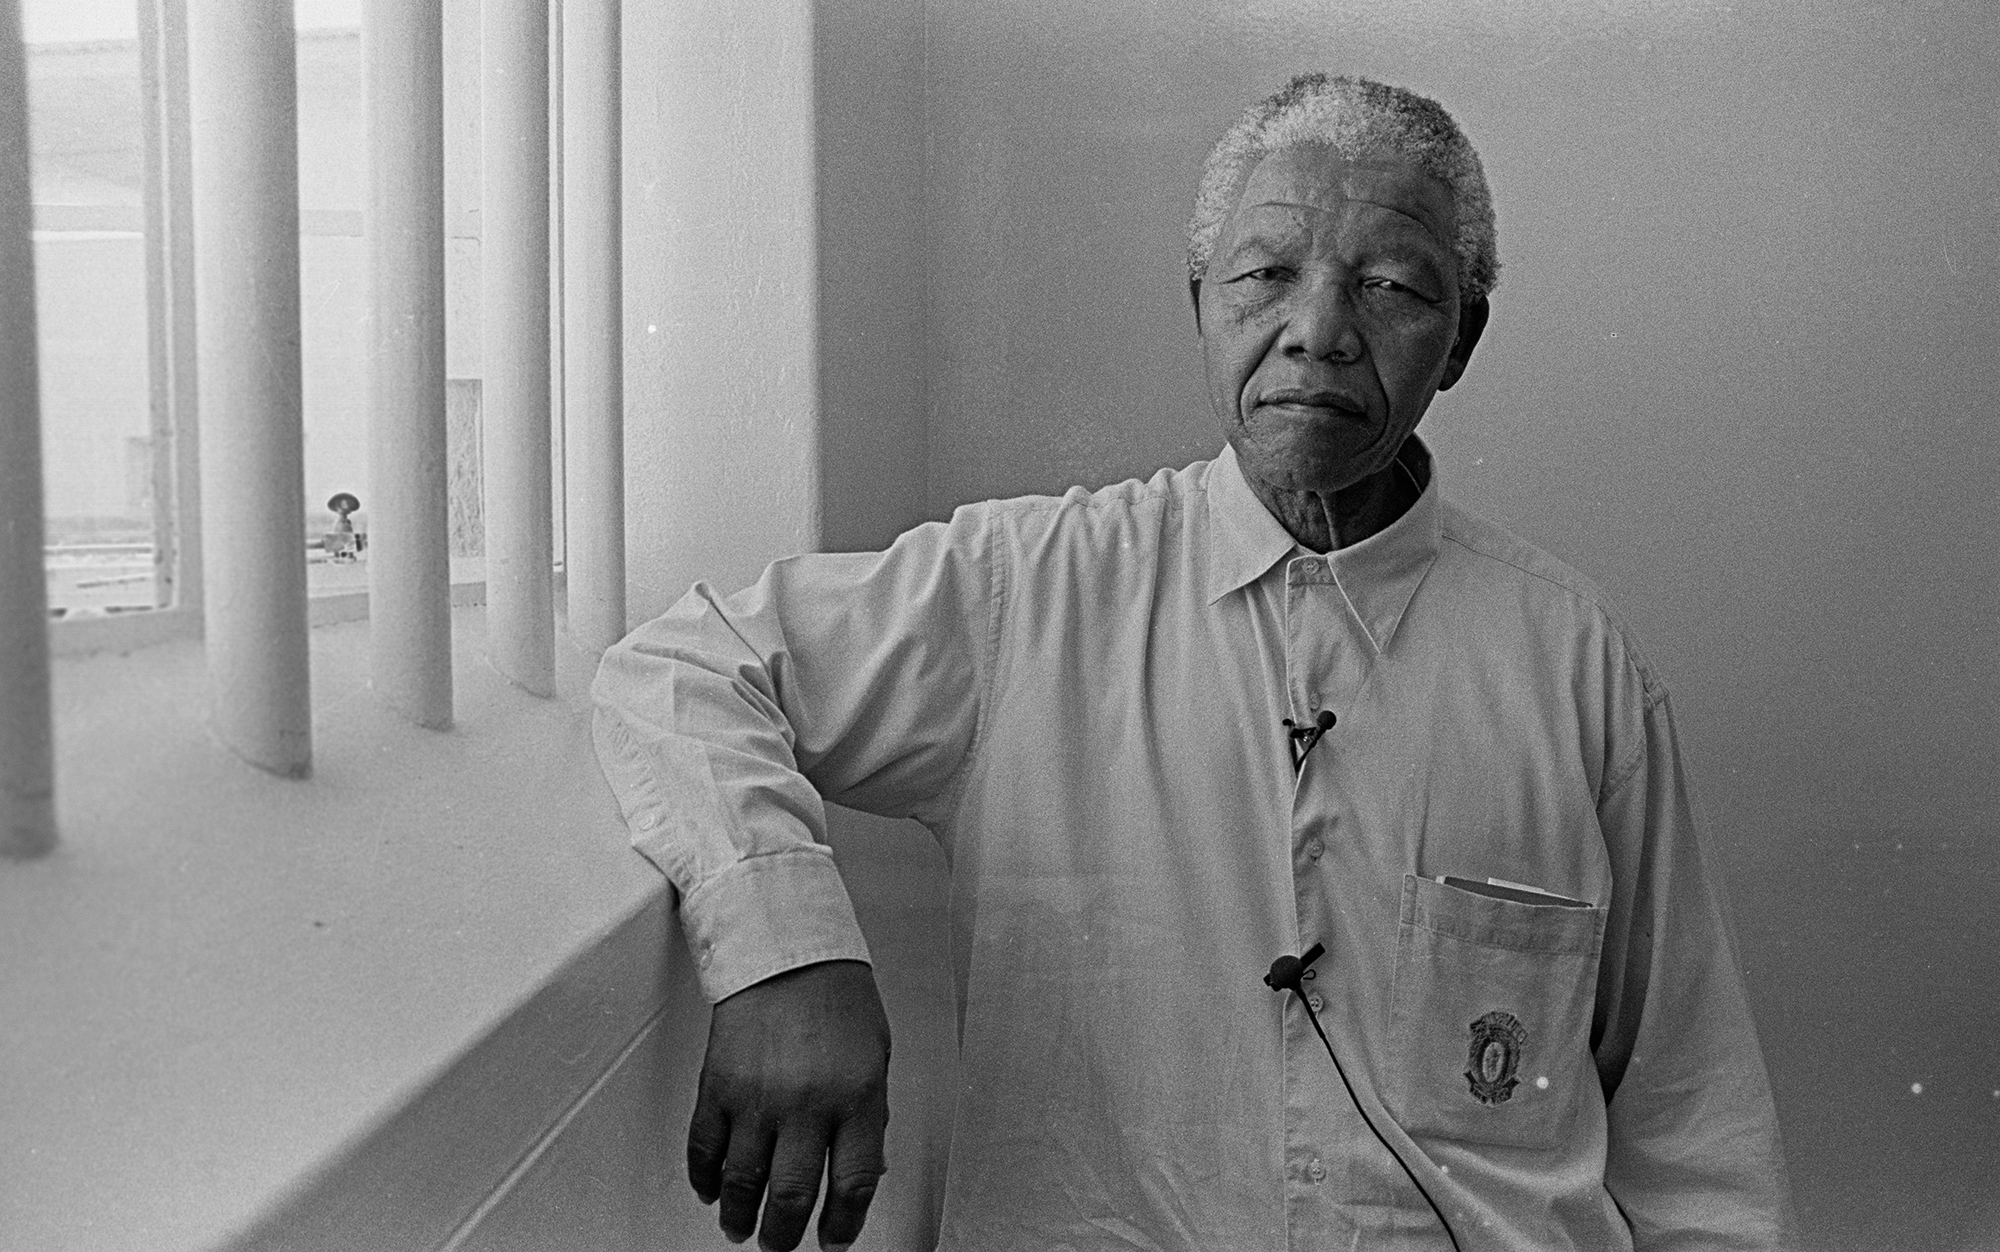 afrikaans essays about nelson mandela Nelson mandela essay nelson mandela is an important person in africa history because of the anc and leadership of mandela south africa laws were changed.